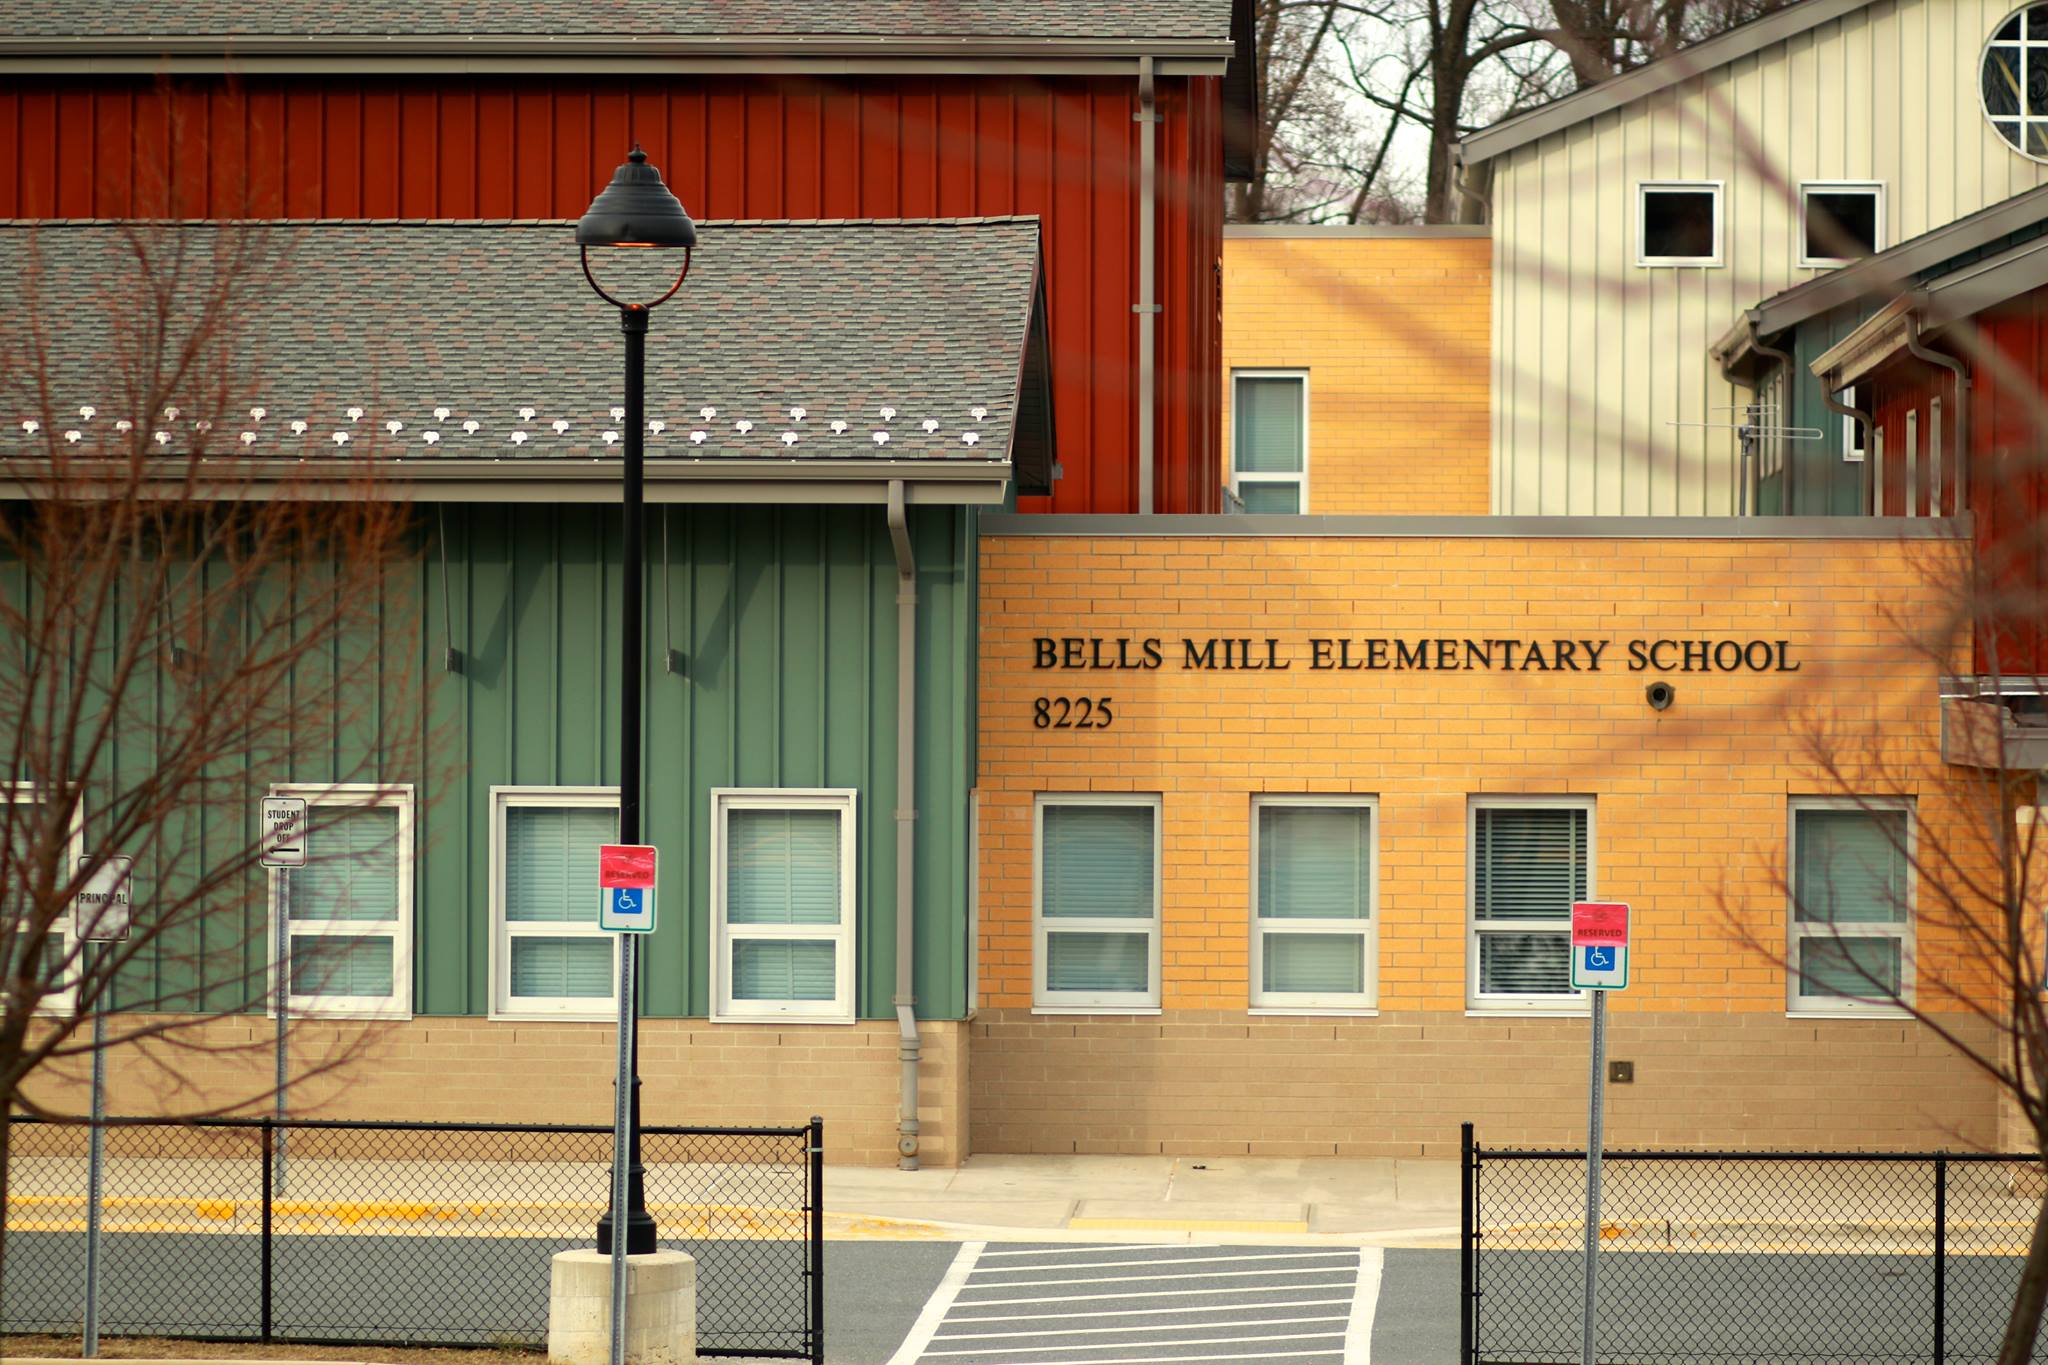 Bells Mill ES is one of several schools the county has renovated in the last 10 years, but many more have to wait until there is enough funding to be renovated.